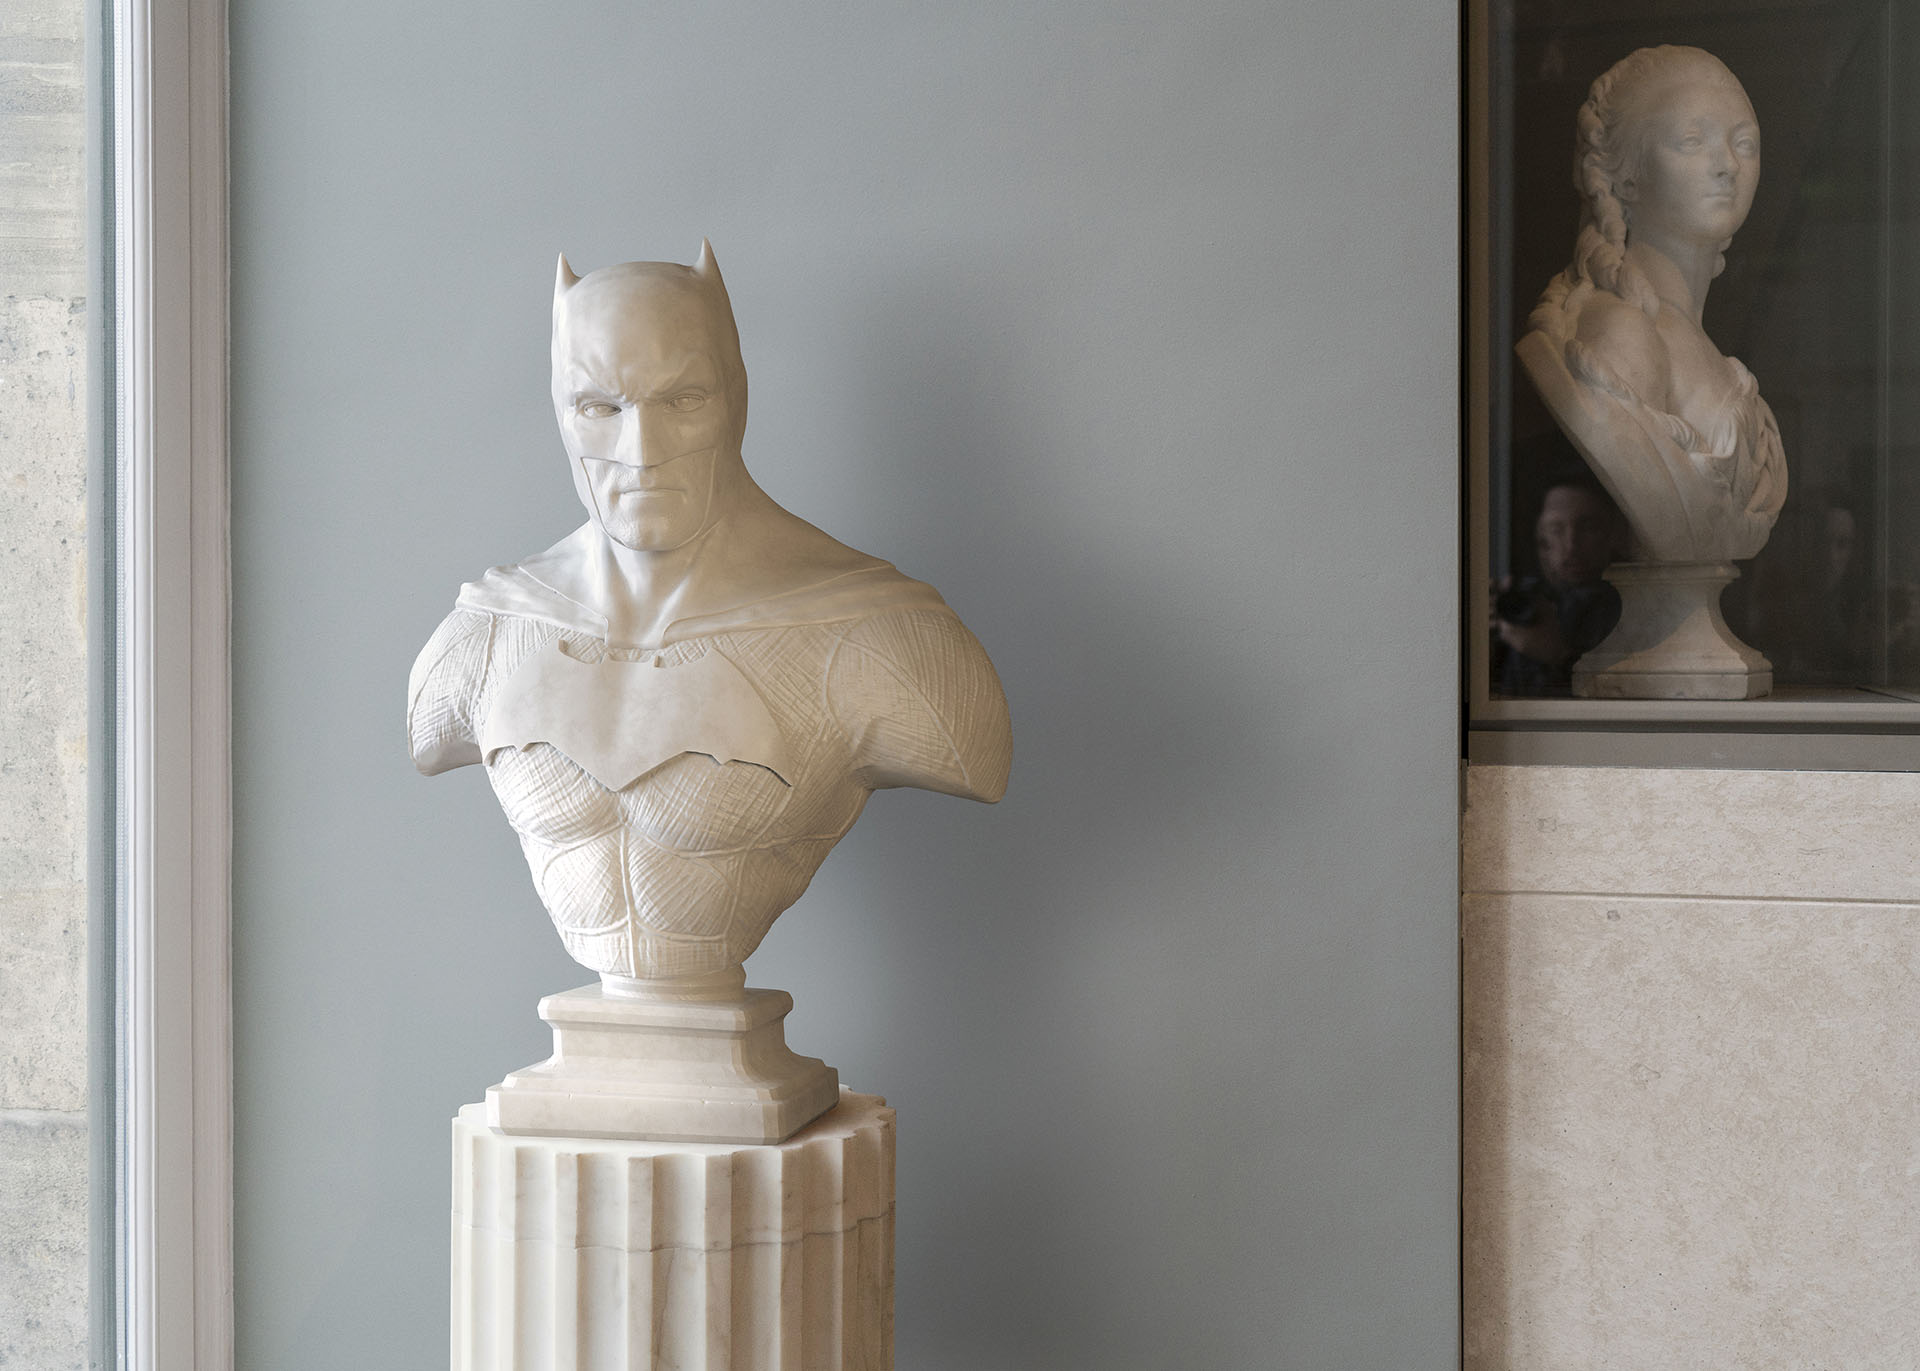 Heroes of Stone sees Leo creating images of superheroes placed in a museum setting.